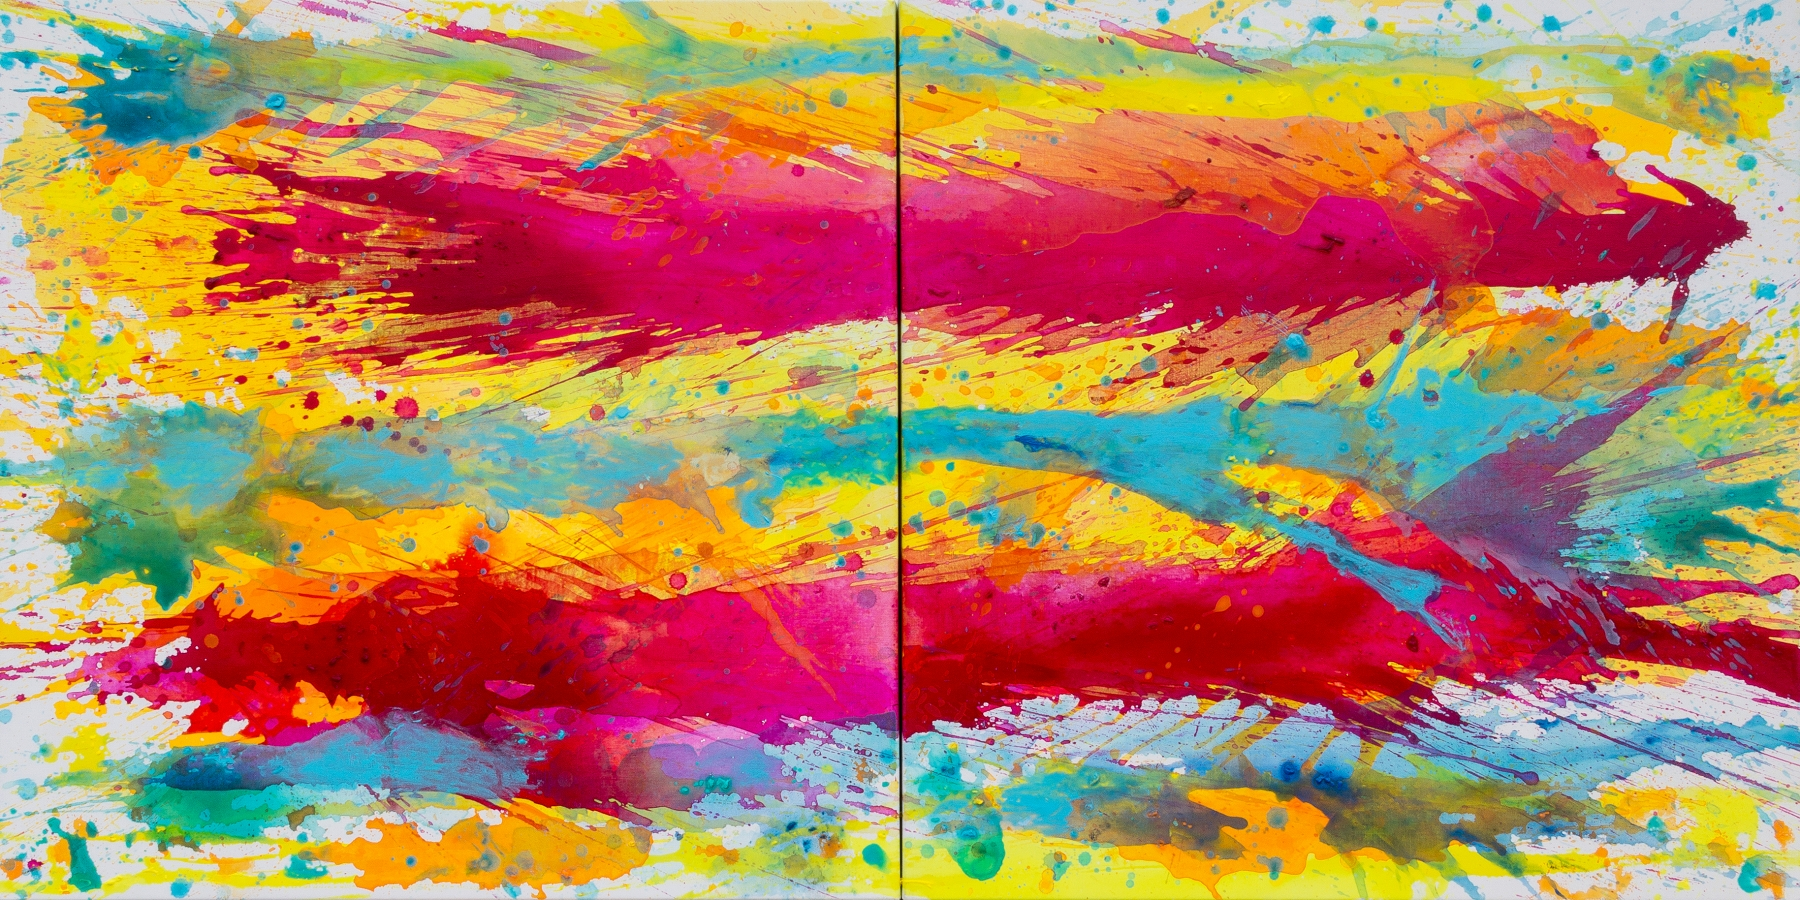 J. Steven Manolis, Biscayne Bay-Sun, Water & Sky 2014.04 (diptych), acrylic on canvas, 36 x 72 inches, Abstract Tropical Painting, Miami Wall art For sale at Manolis Projects Art Gallery, Miami Fl